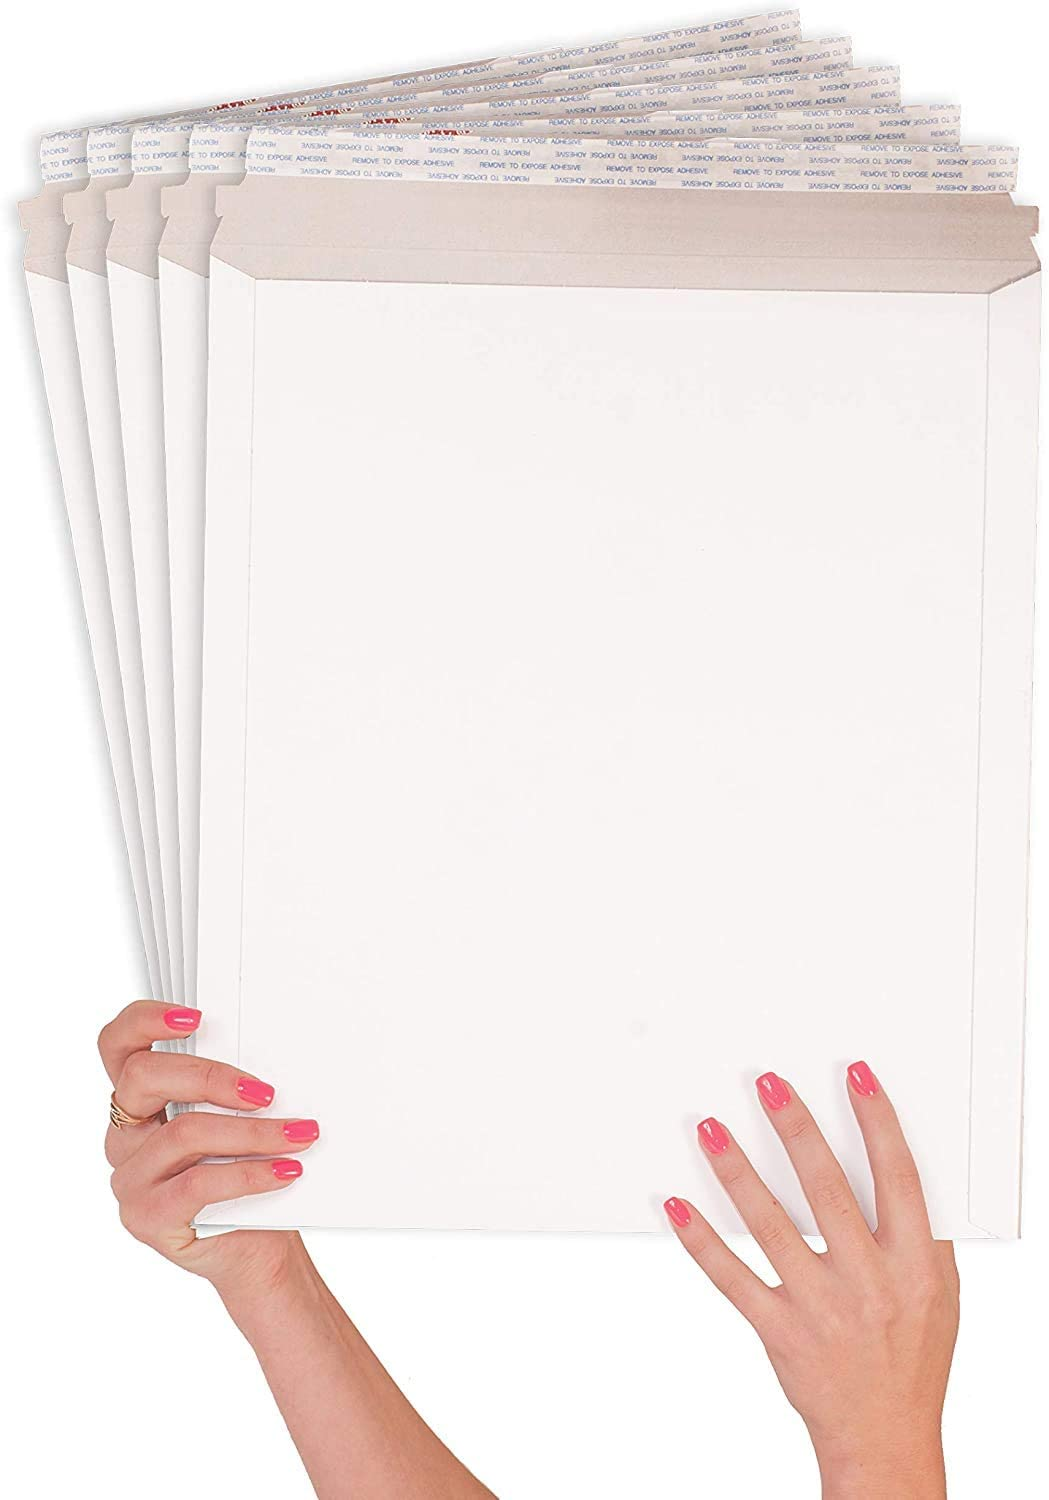 ABC 10 Pack White Stay Flat Mailers 13 x 18 X-Large Size Durable Stiff Carboard envelopes 13x18. Rigid Paperboard mailers. Photography Mailers for Documents, Photo, Prints. Tear Tab, Peel and Seal